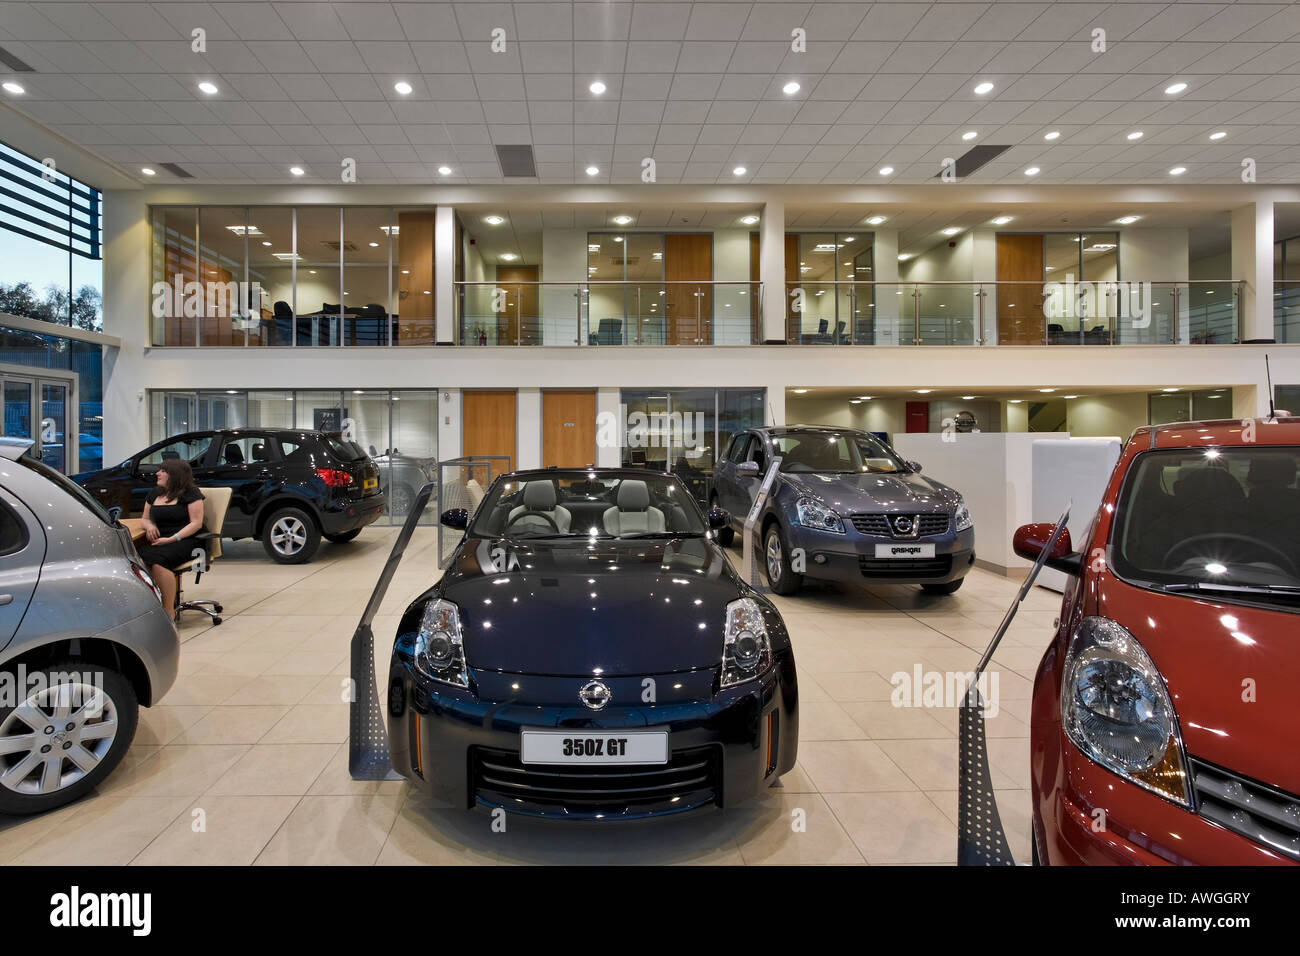 Nissan Car Showroom Interior Stock Photo 16576286 Alamy